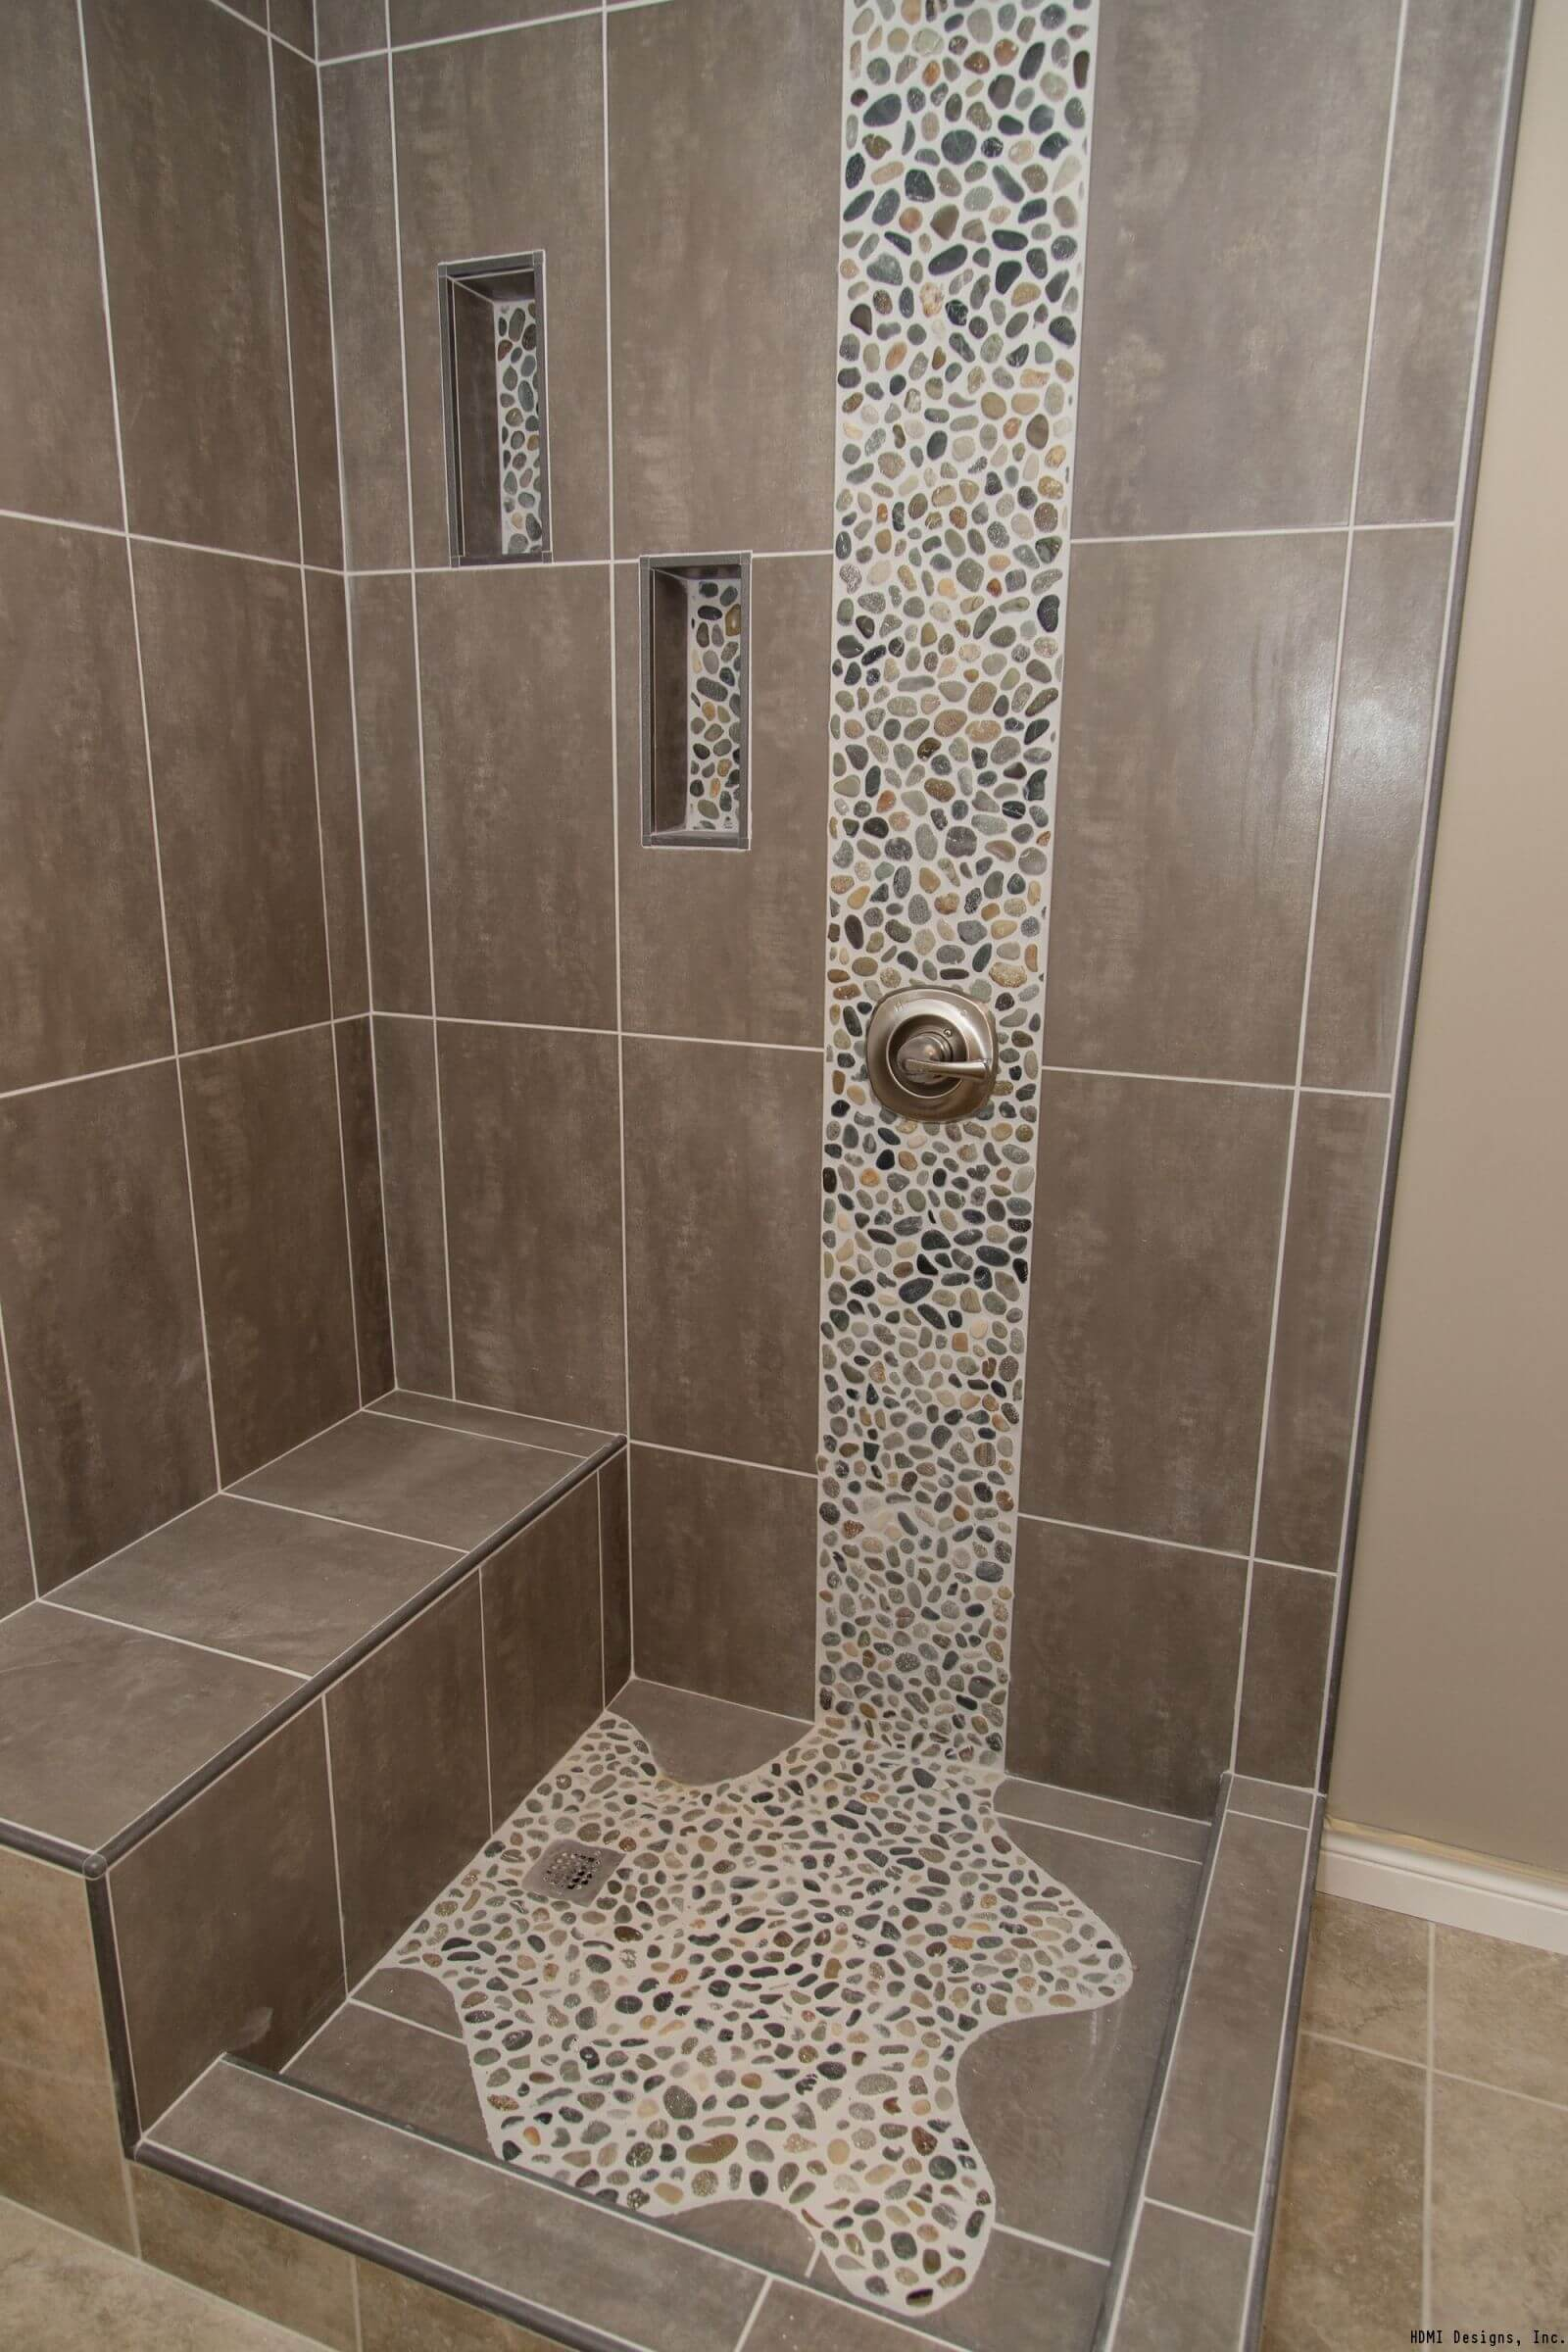 32 Best Shower Tile Ideas and Designs for 2018 Shower Flooring Bathroom Design Ideas on bathroom shower prints, master bathroom flooring ideas, white bathroom flooring ideas, bathroom shower tile, bathroom shower shelves, bathroom shower inspiration, bath flooring ideas, kitchen flooring ideas, bathroom shower patterns, bathroom backsplashes ideas, bathroom shower paint, bathroom shower art, bathroom shower display, contemporary bathroom flooring ideas, dining room flooring ideas, bathroom faucet ideas, decorating flooring ideas, bathroom shower accessories, bathroom shower carpet, bathroom shower chairs,